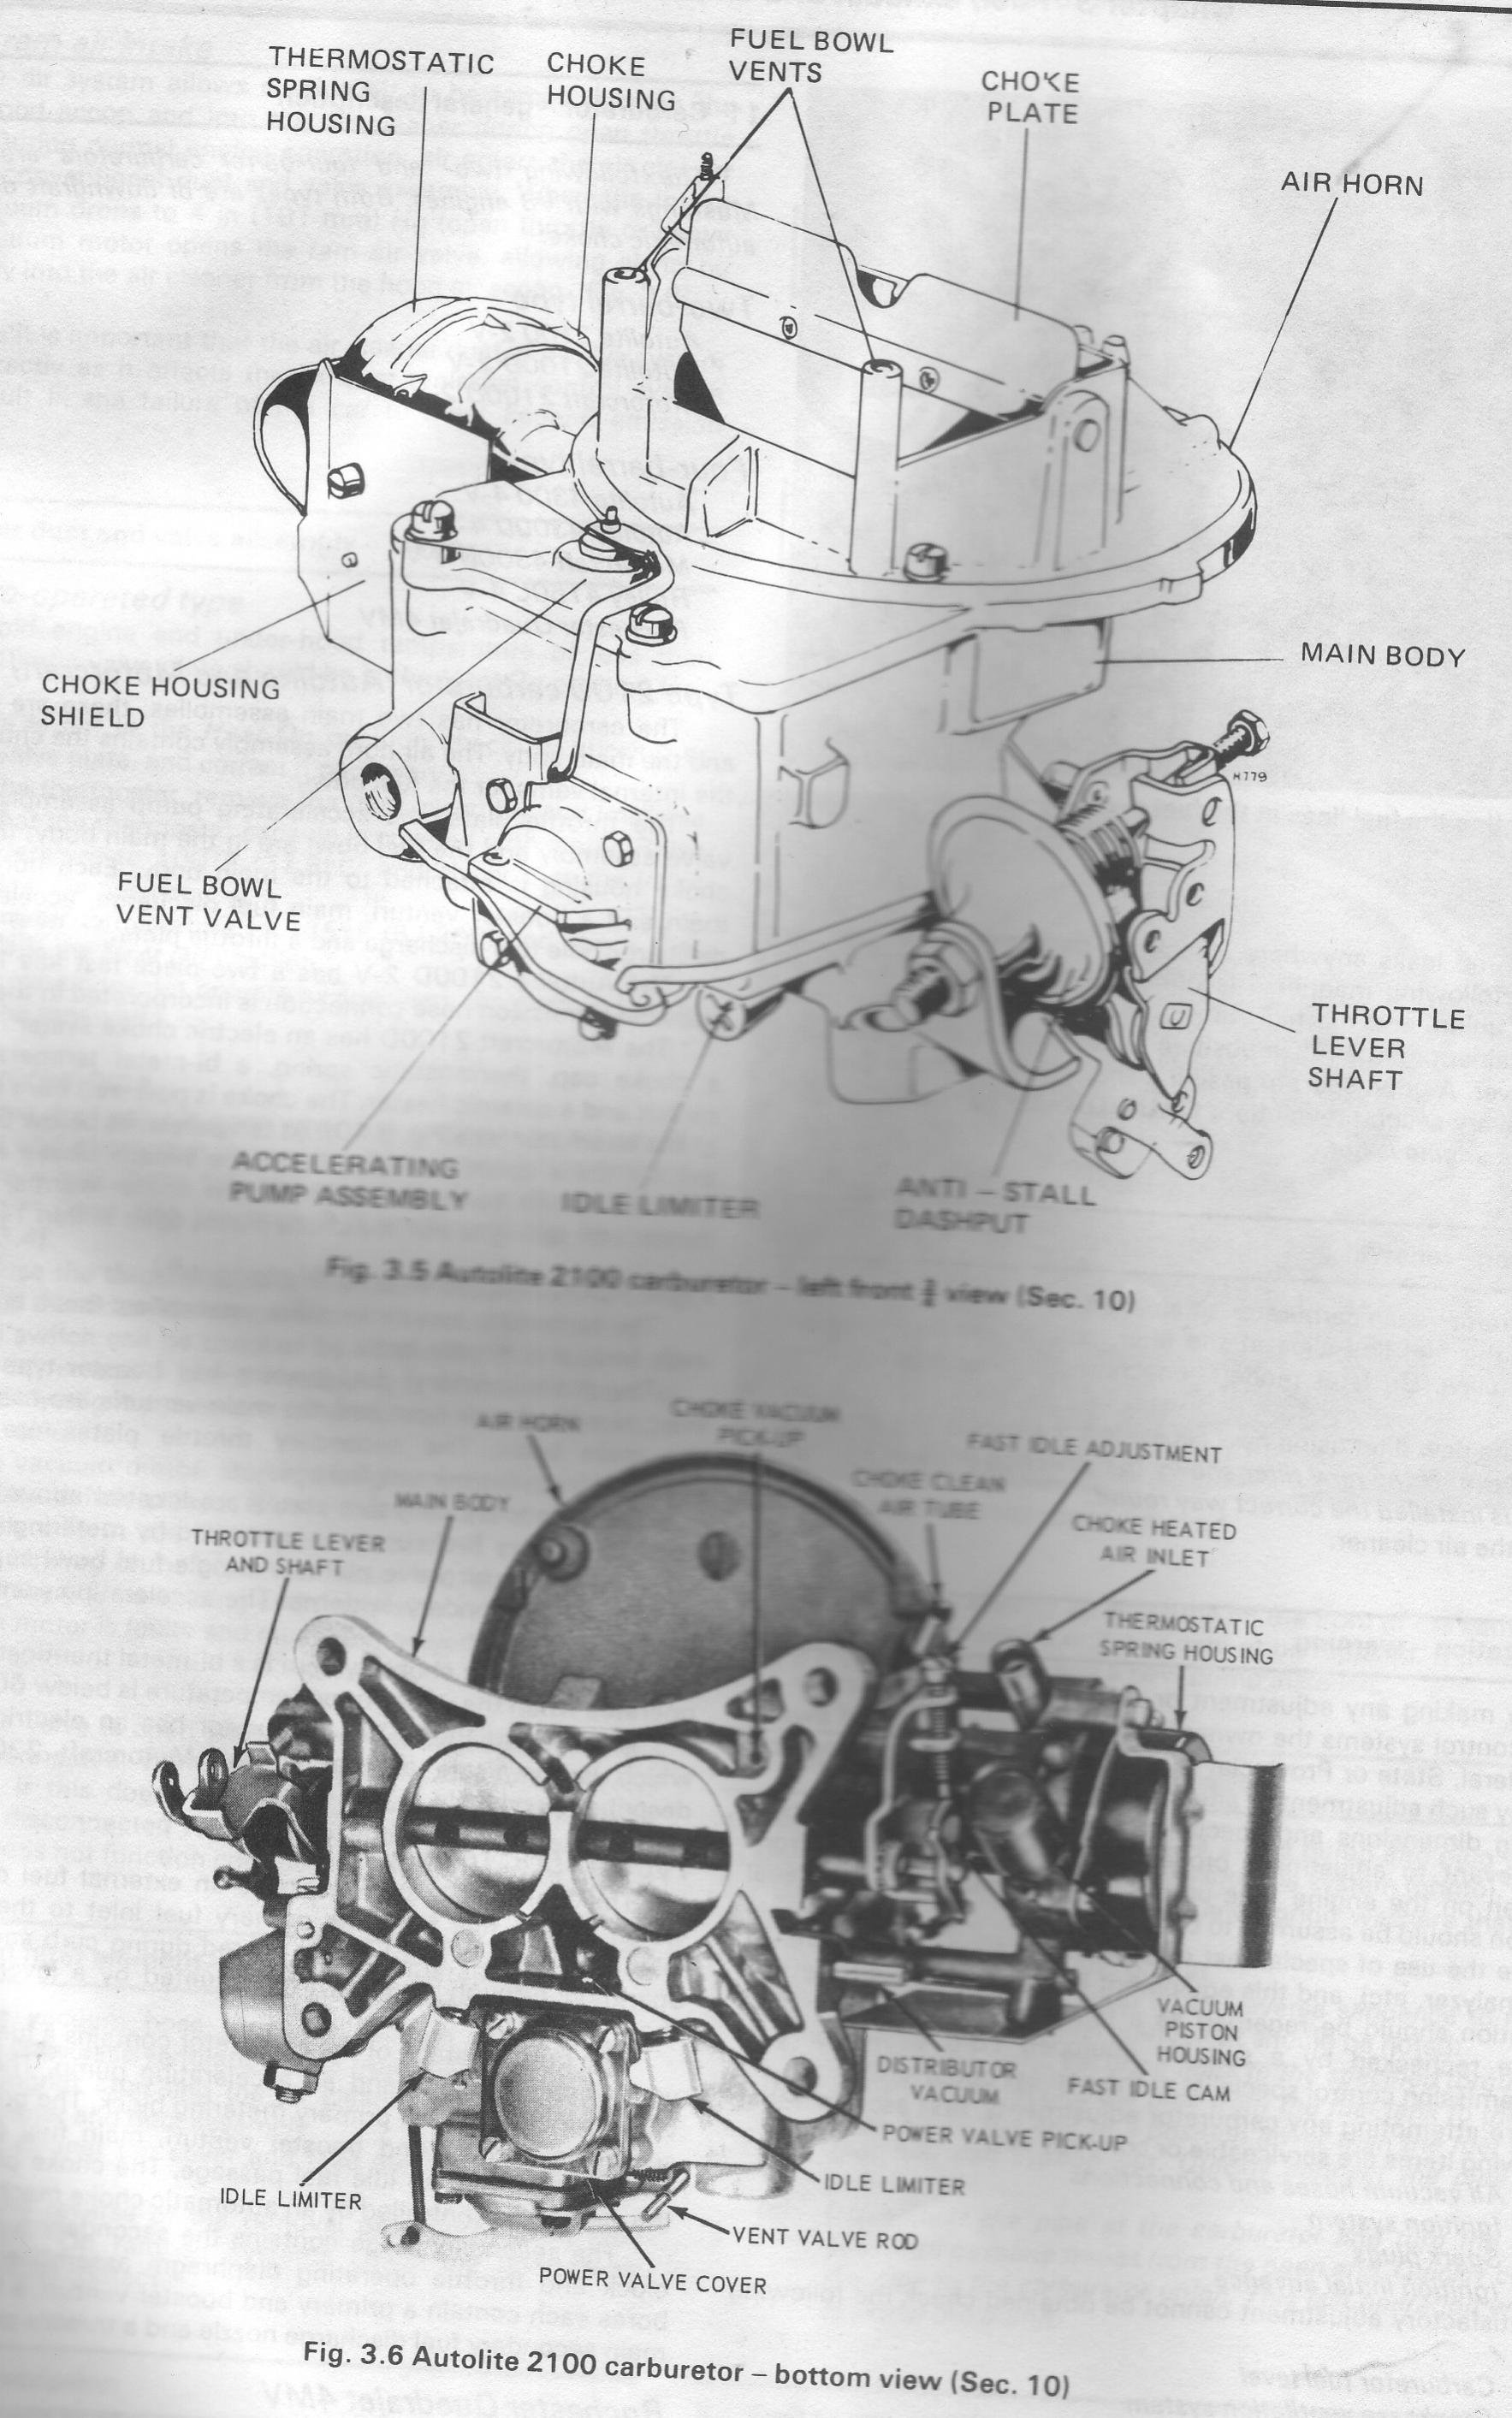 63152d1236399041 2100 carb diagram motorcraft 2 2100 carb diagram page 2 ford mustang forum Motorcraft 2150 Carburetor Identification at bayanpartner.co